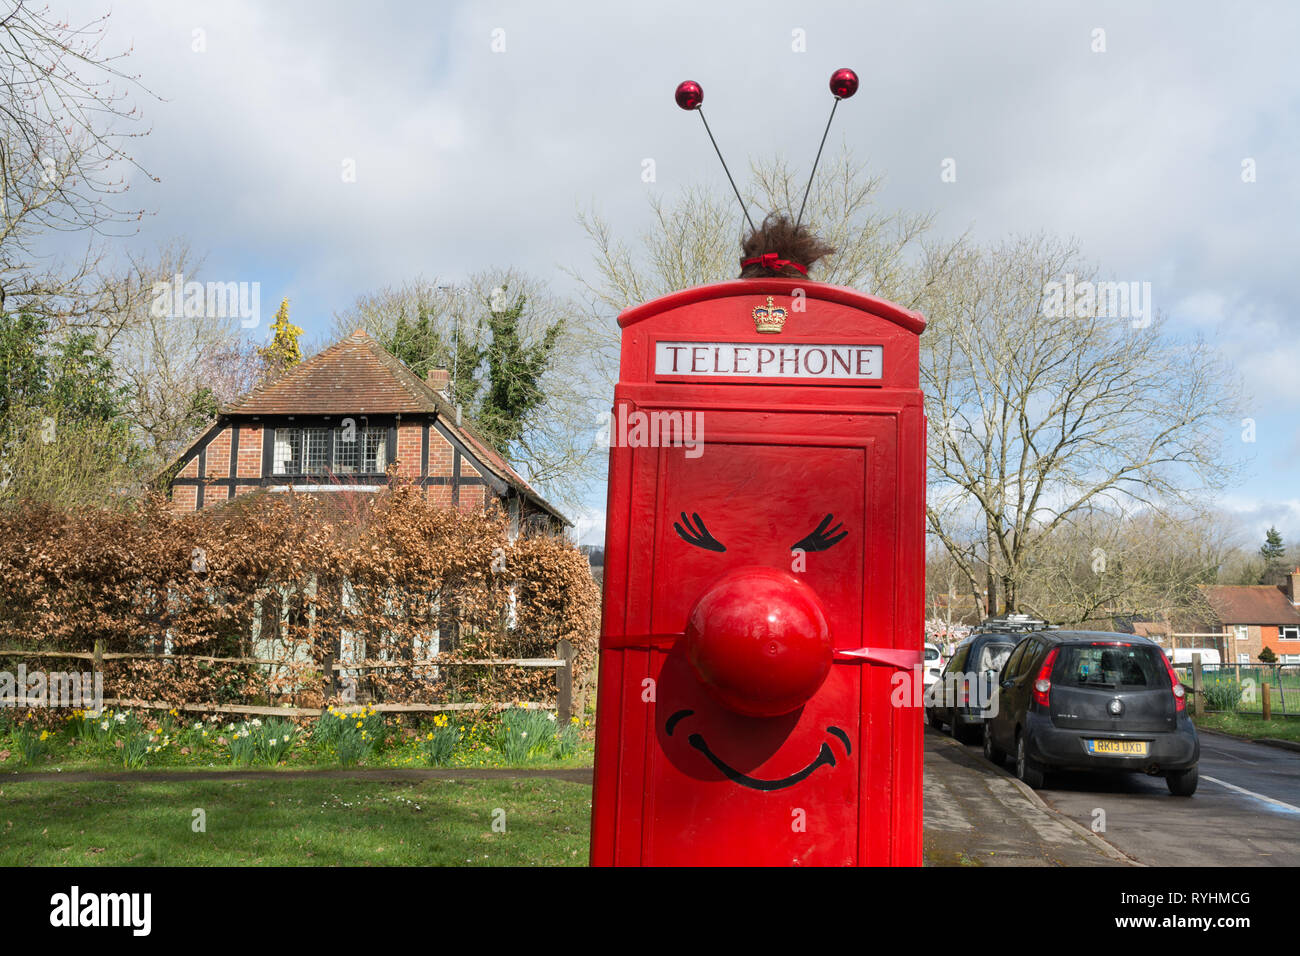 compton-surrey-uk-14th-march-2019-the-phone-box-in-compton-village-has-been-decorated-in-support-of-red-nose-day-which-takes-place-on-friday-15th-march-by-local-resident-and-parish-councillor-mr-chris-sharples-a-painted-disposable-beer-keg-was-used-for-the-red-nose-credit-gillian-pullingeralamy-live-news-RYHMCG.jpg